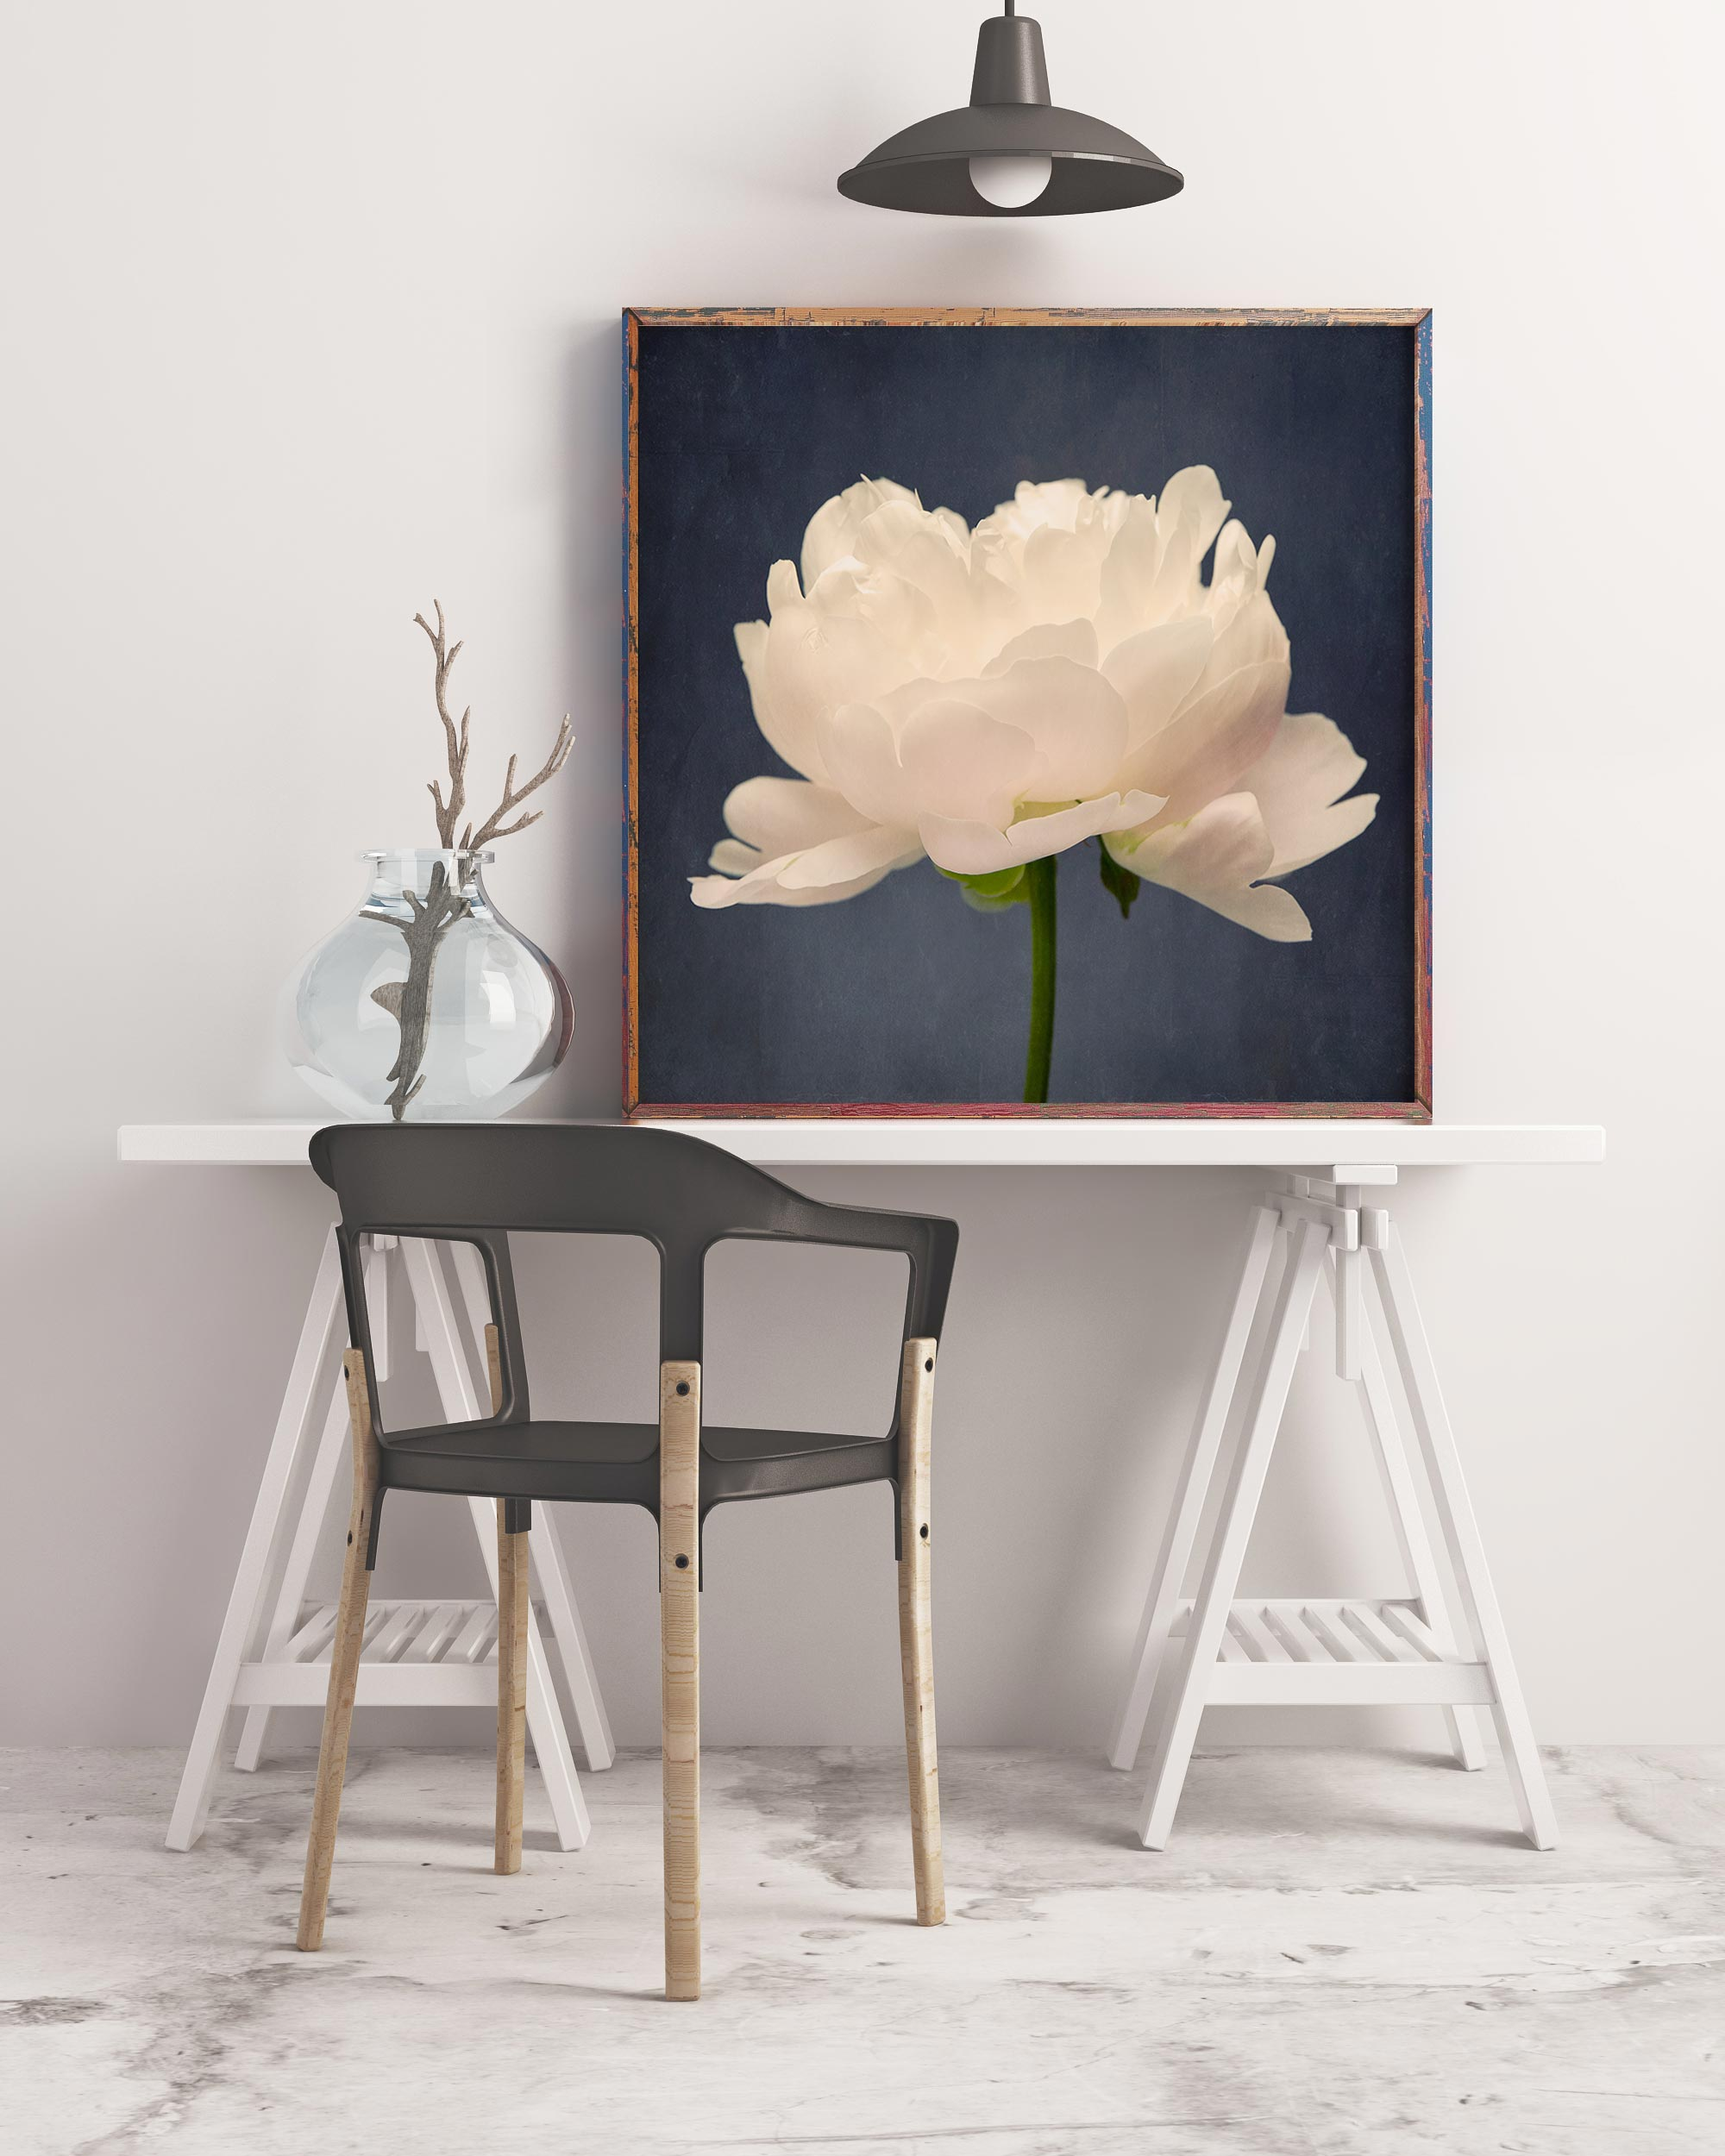 Sample framed image of white peony photograph